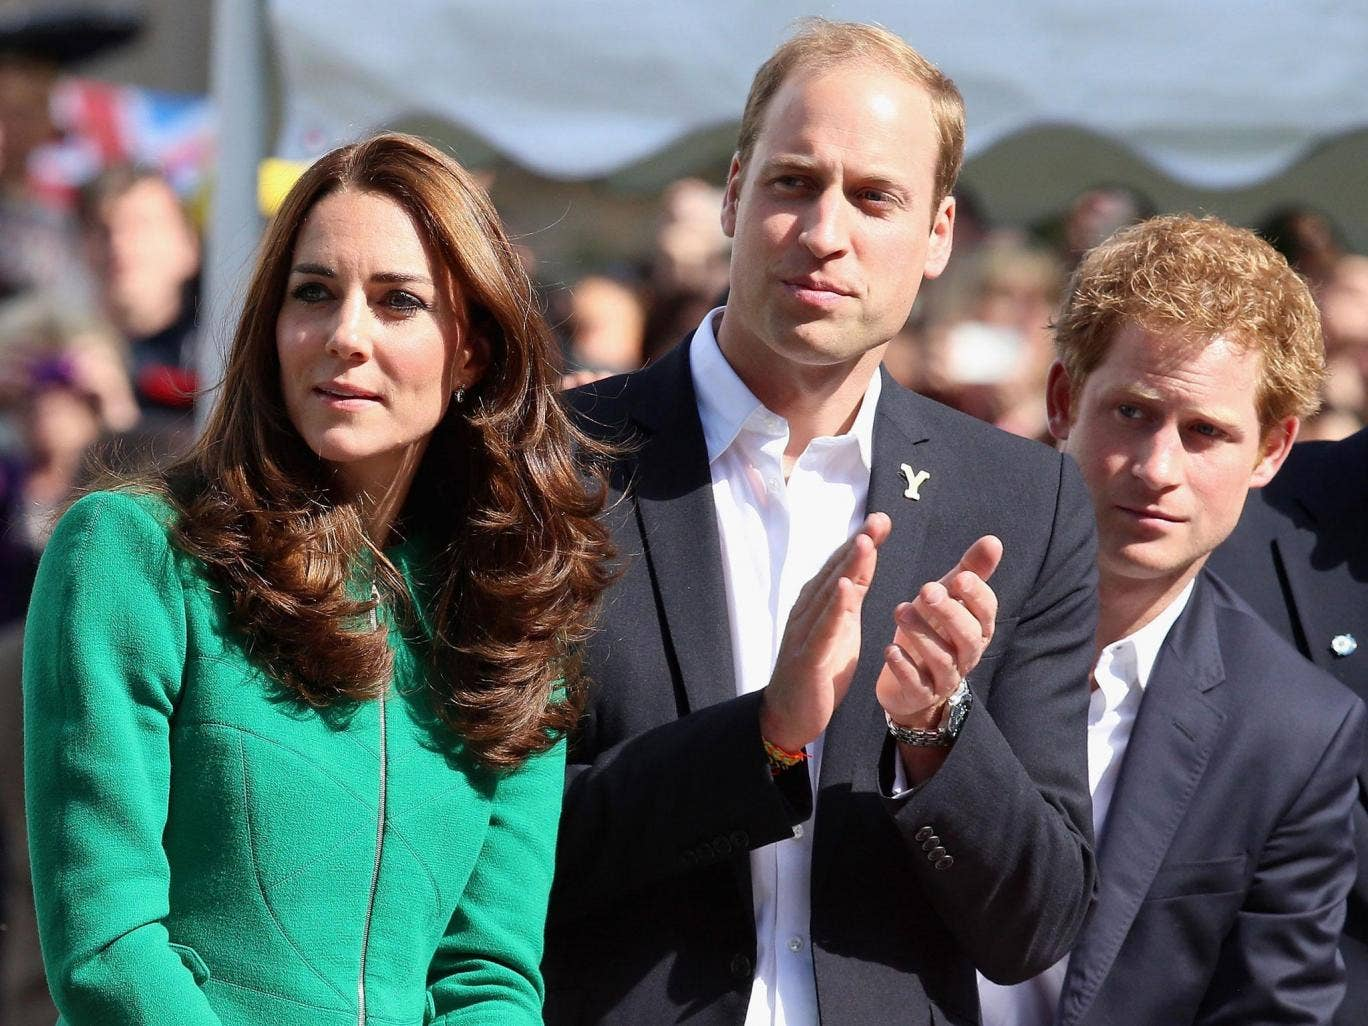 It was only revealed last year that the phones of the Duchess of Cambridge, Prince William, and Prince Harry had been hacked